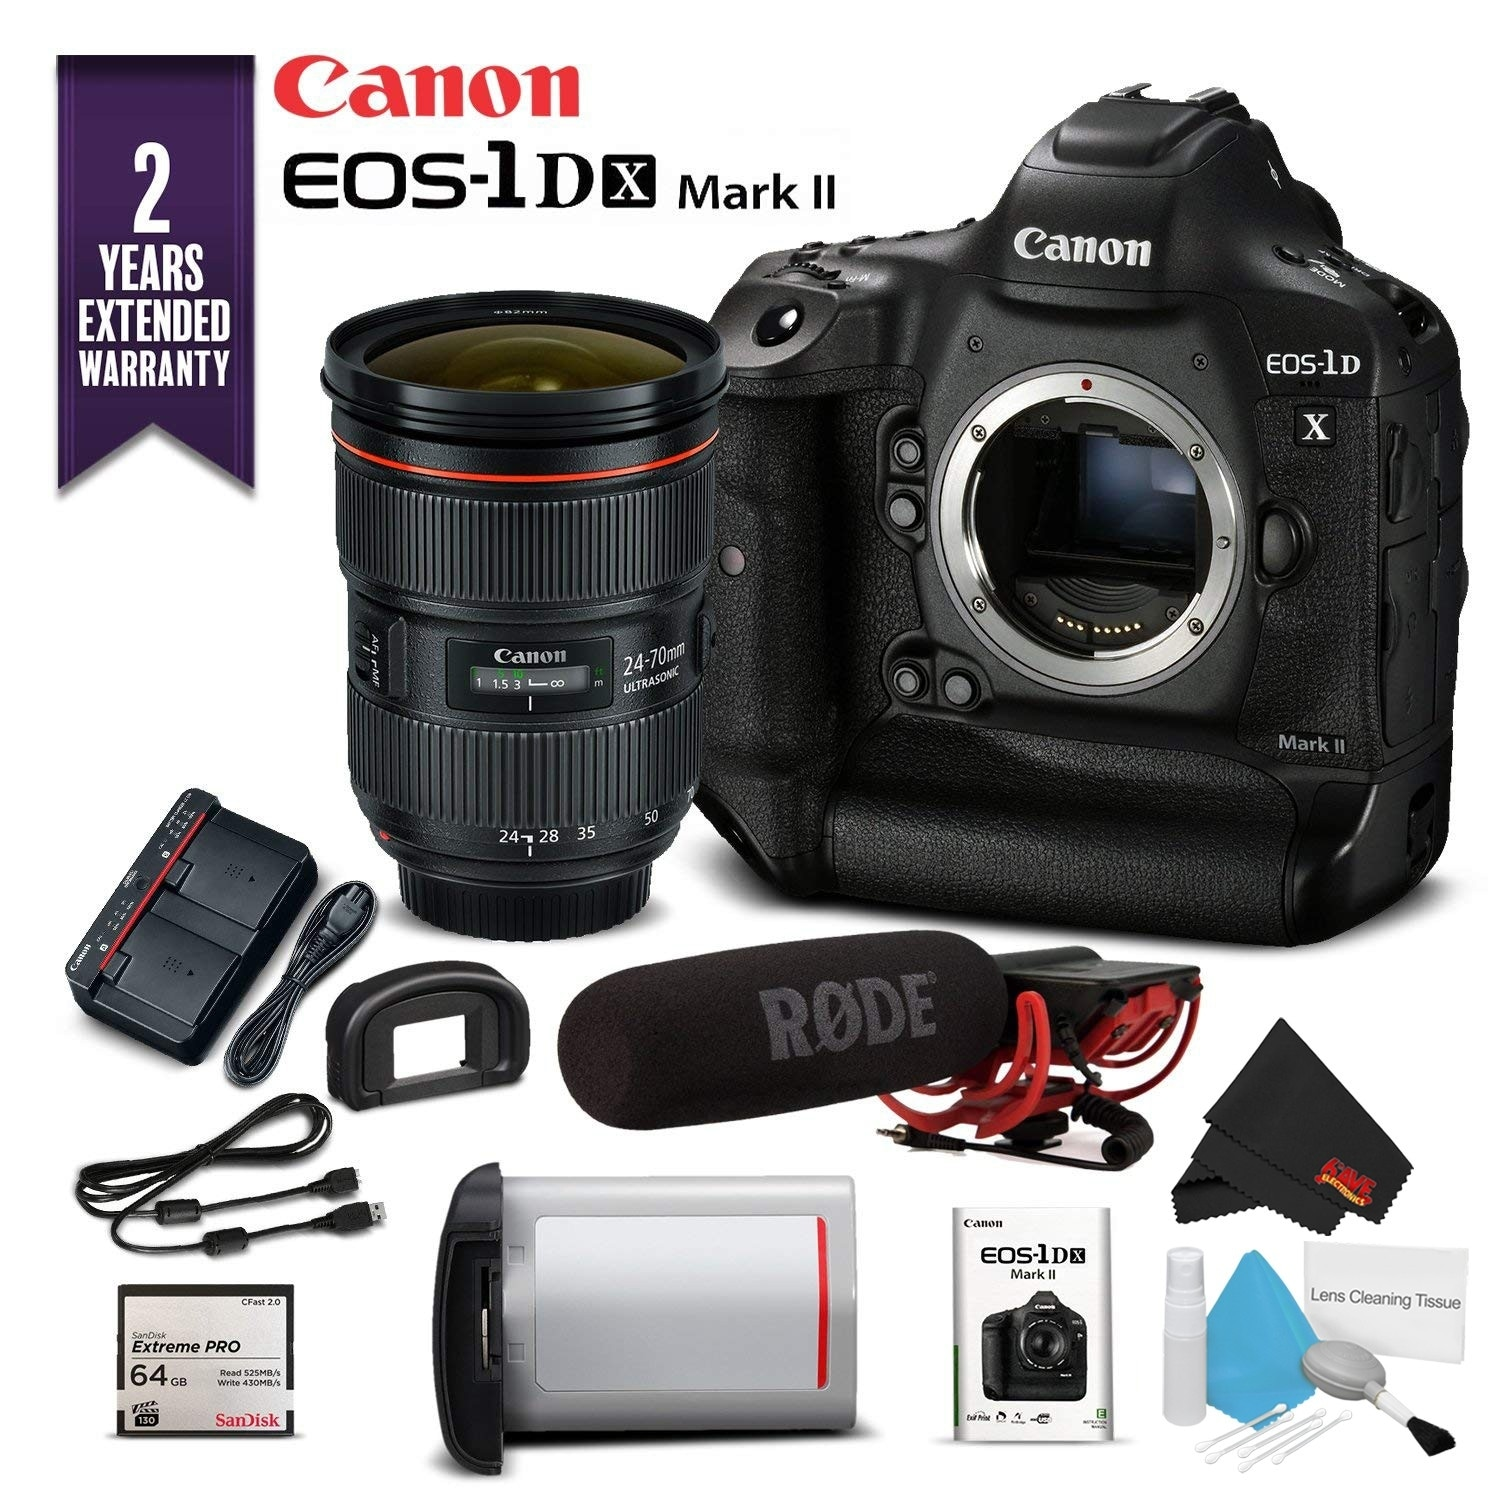 Jual Canon Eos M3 Ef M15 45 Is Stm Kit White 242mp Termurah 2018 Bonia Jam Tangan Wanita B10100 2352 Silver Shop 1dx Mark Ii Dslr Camera W 24 70mm F 28l